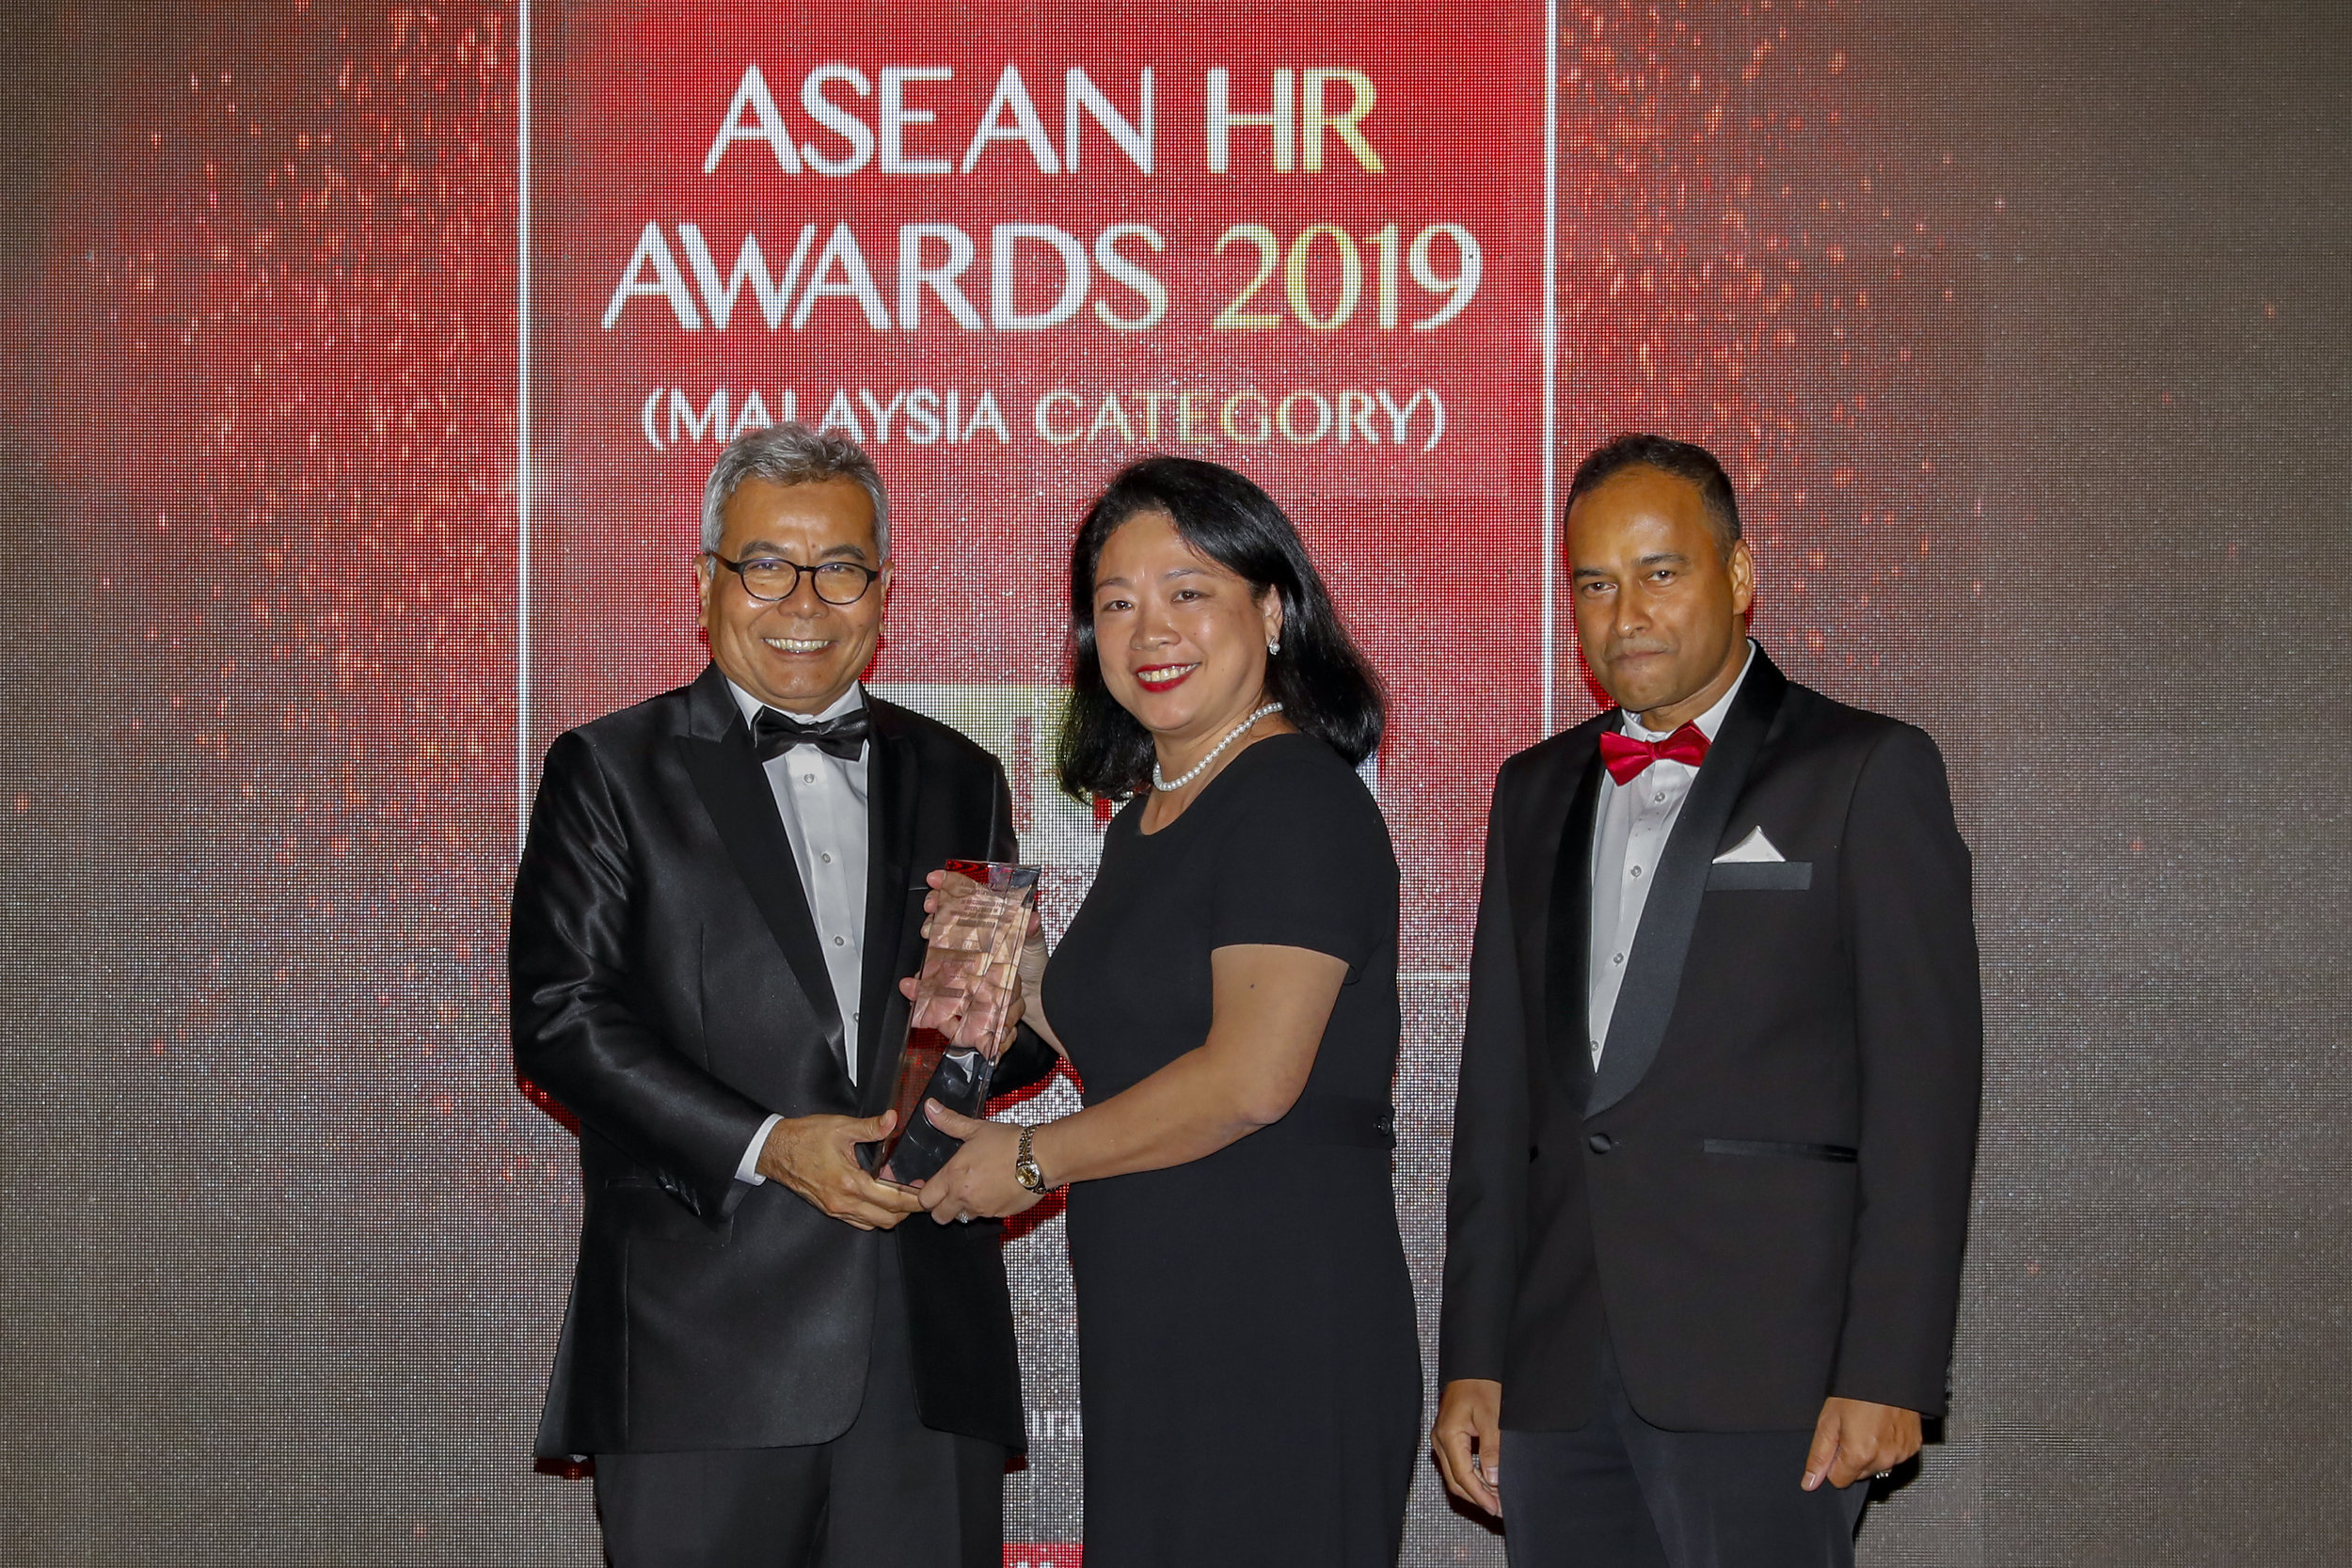 Photo Caption: (From left) Entrepreneur Development Minister Datuk Seri Mohd Redzuan Md Yusof presenting the award to AirAsia Head of Facilities Catherine Kok, witnessed by Niagatimes Advisor Dato' R. Rajendran at the Asean HR Awards 2019.